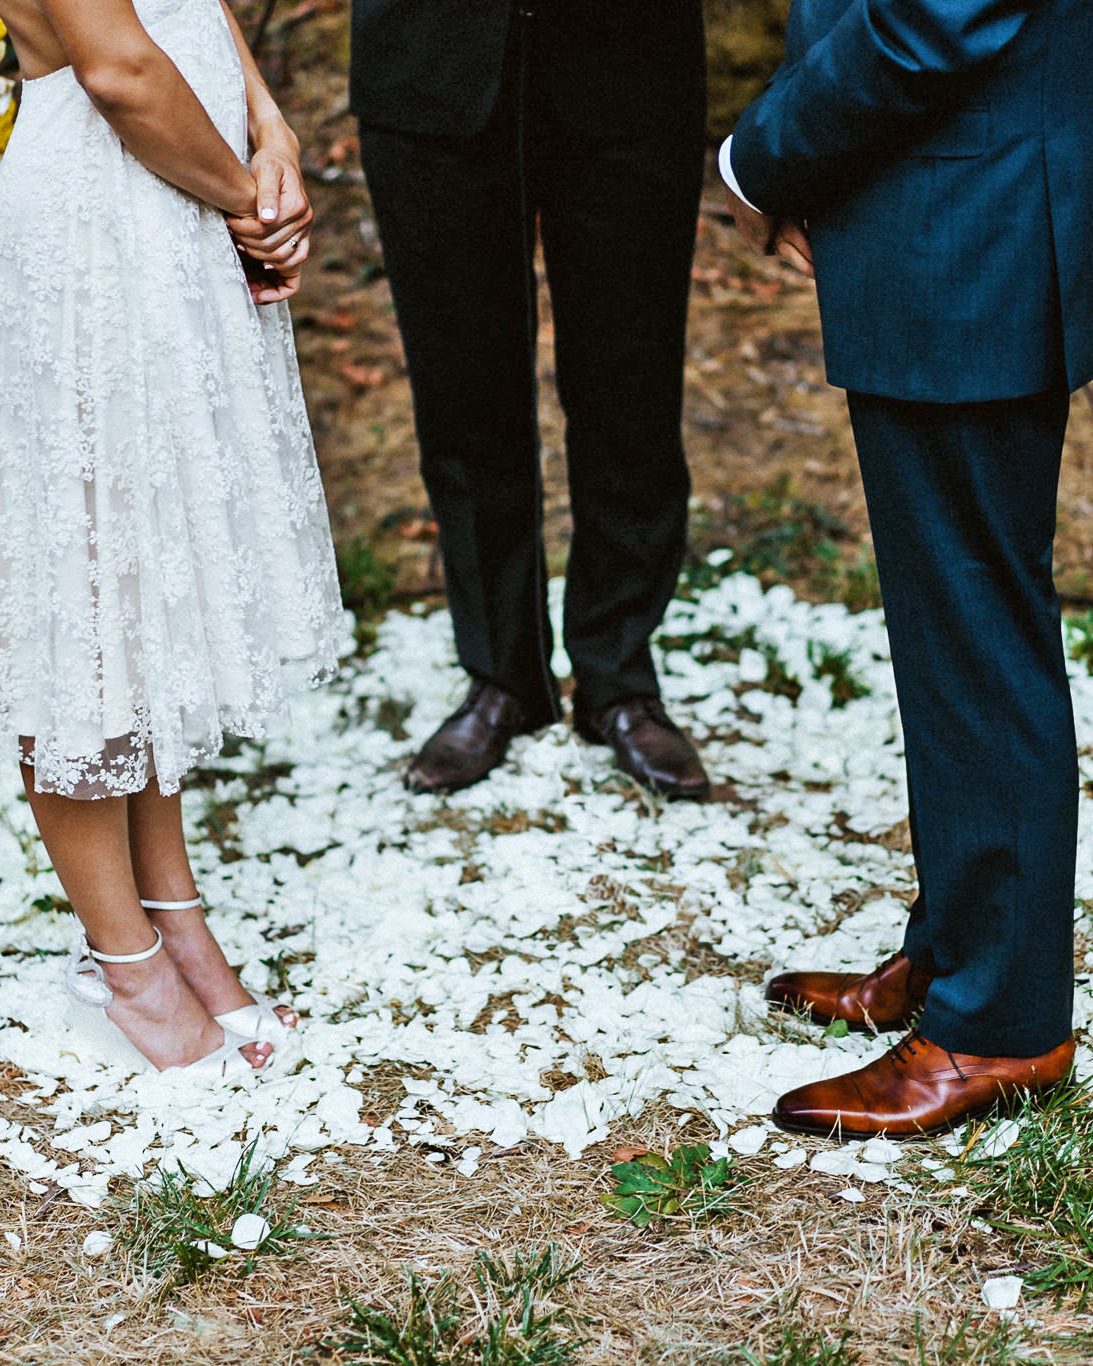 amy nick wedding ceremony petals feet